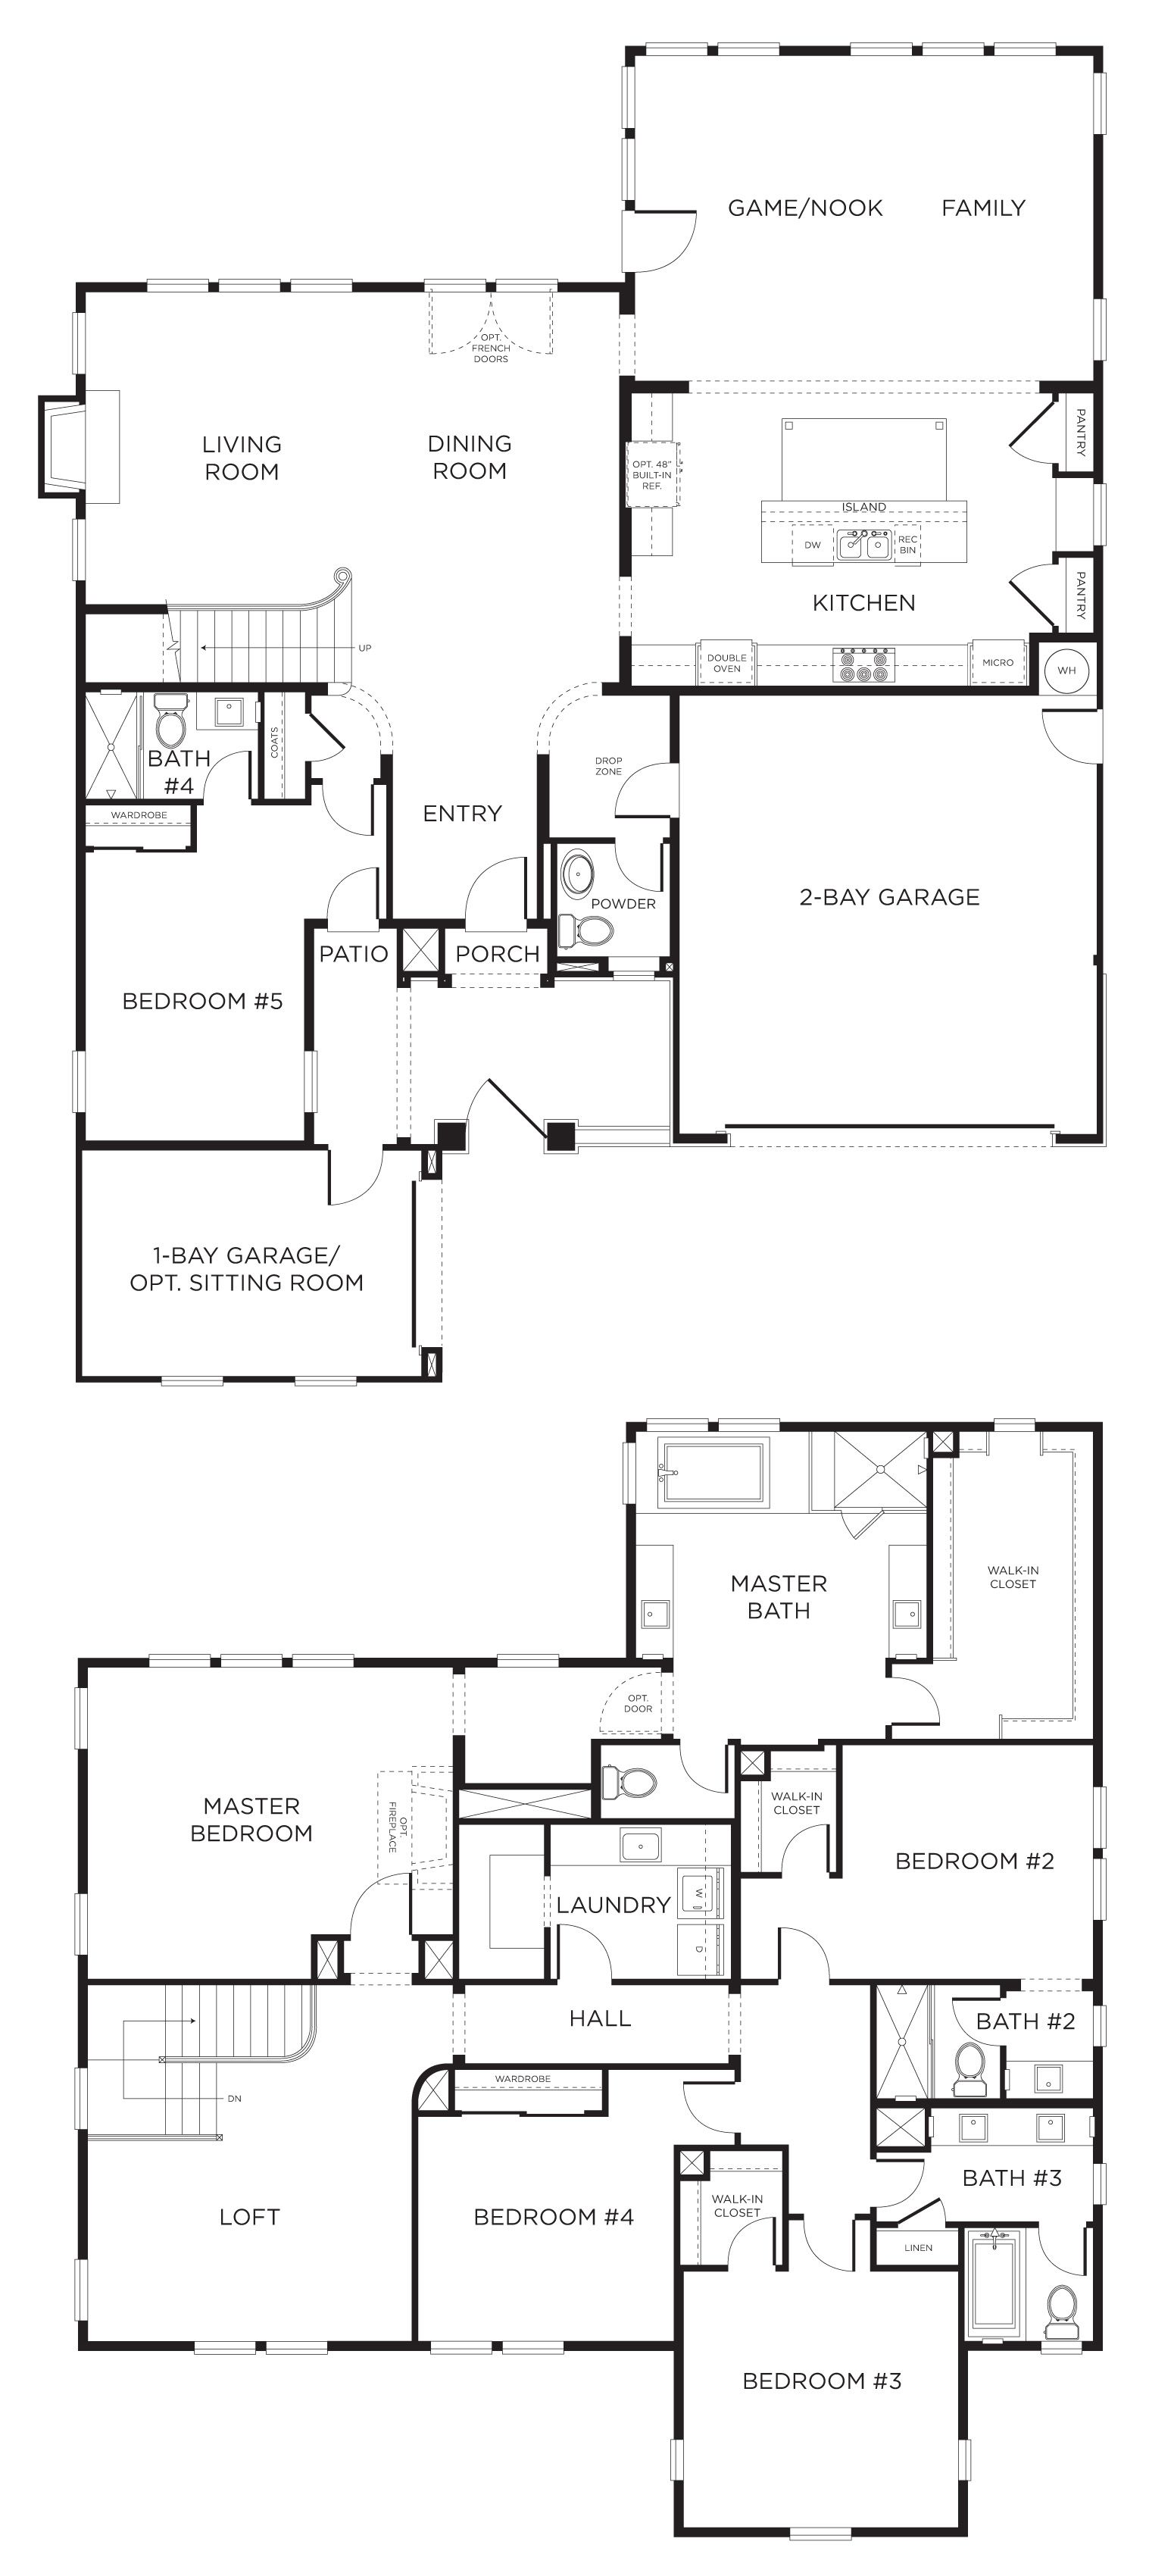 5 bedroom house plan i 39 d move the 5th room upstairs and for Upstairs plans